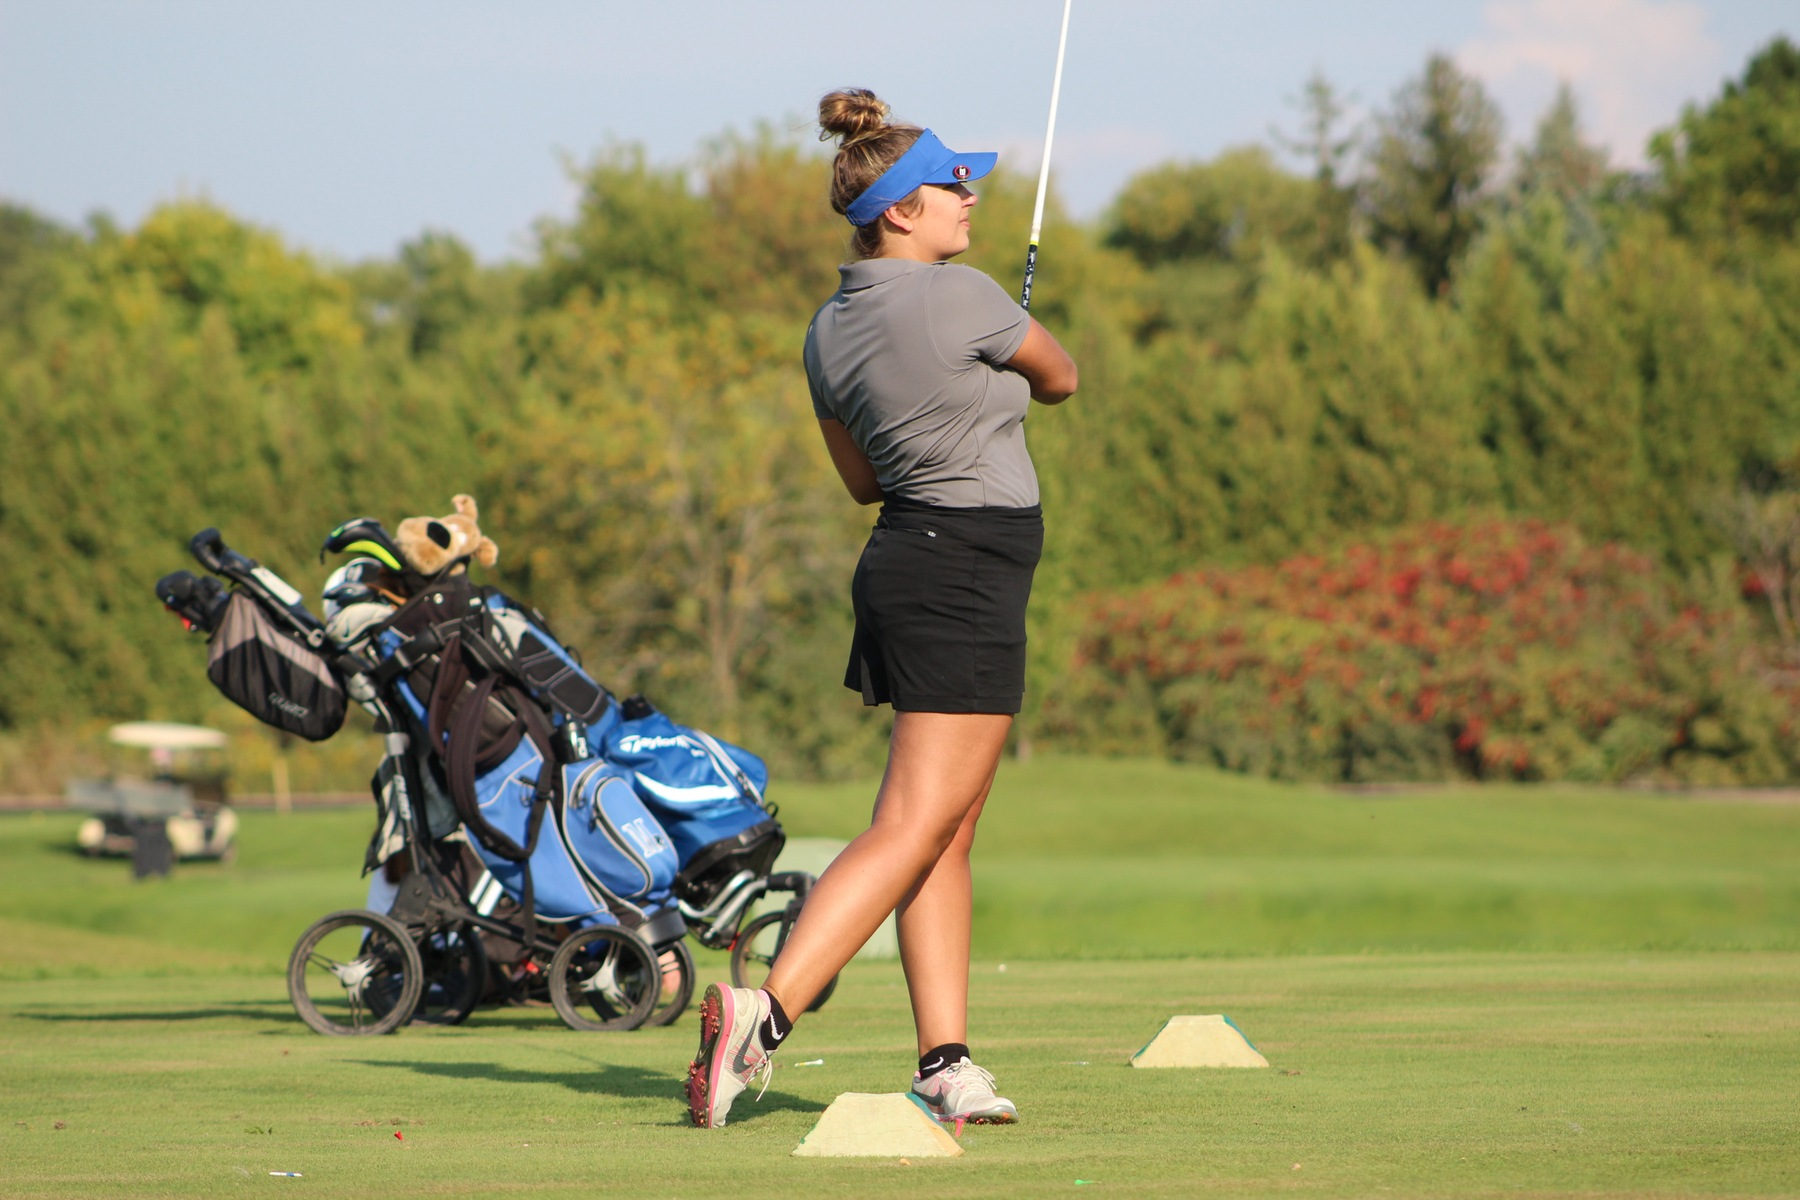 Taylor Lockhart watches her ball off of the tee.